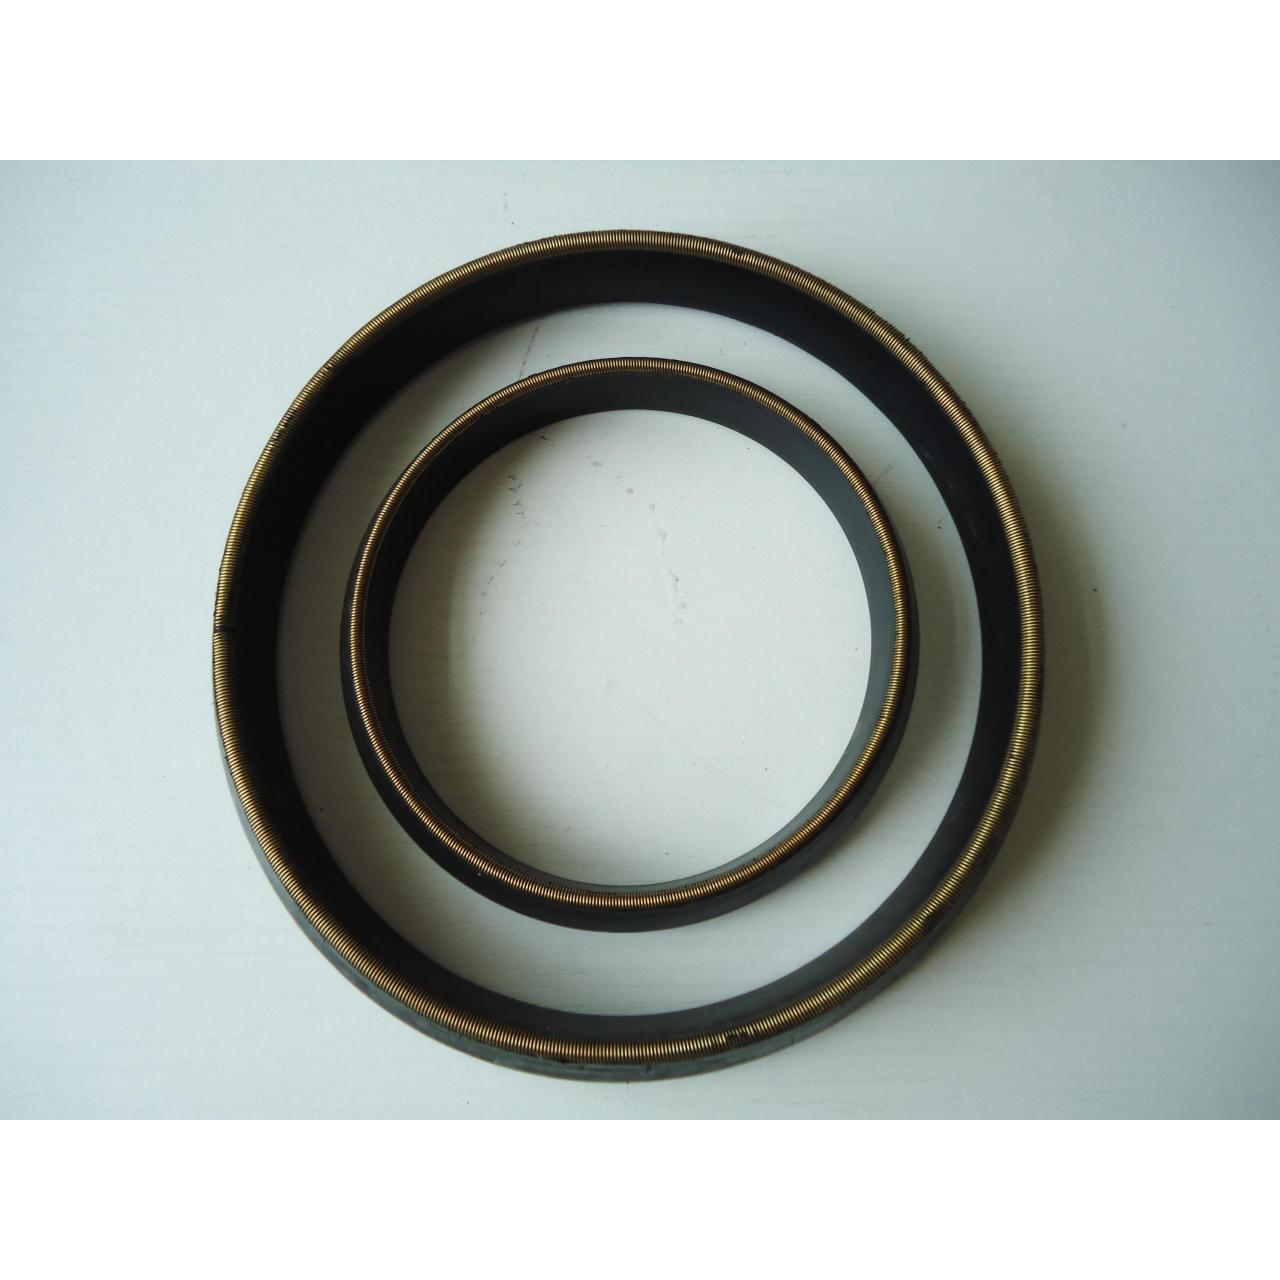 Rubber gasket with spring